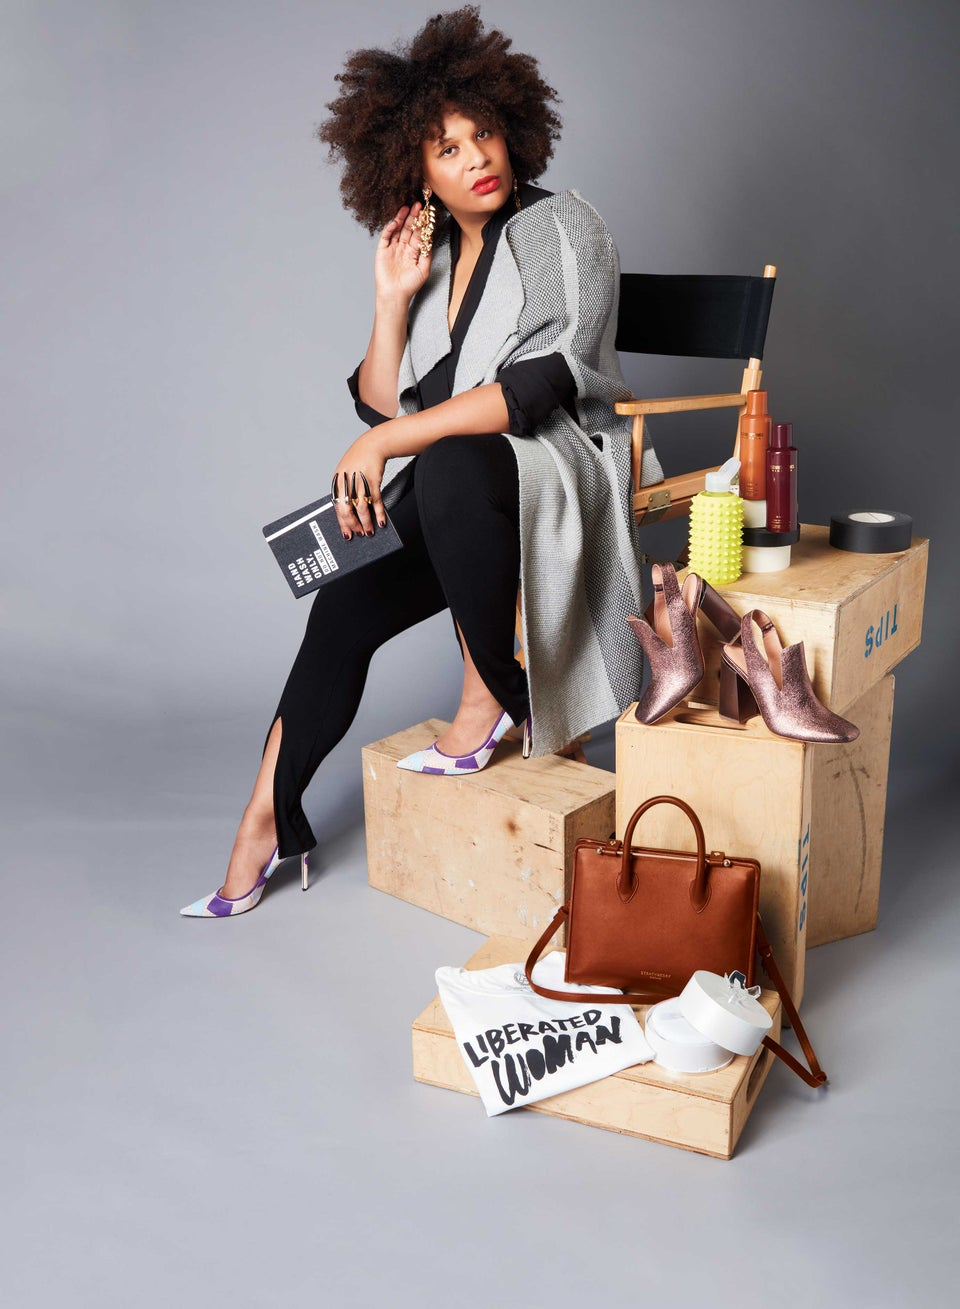 Dope Stuff On My Desk: All The Fashion And Beauty Items You Need To StrutInto Fall With Style